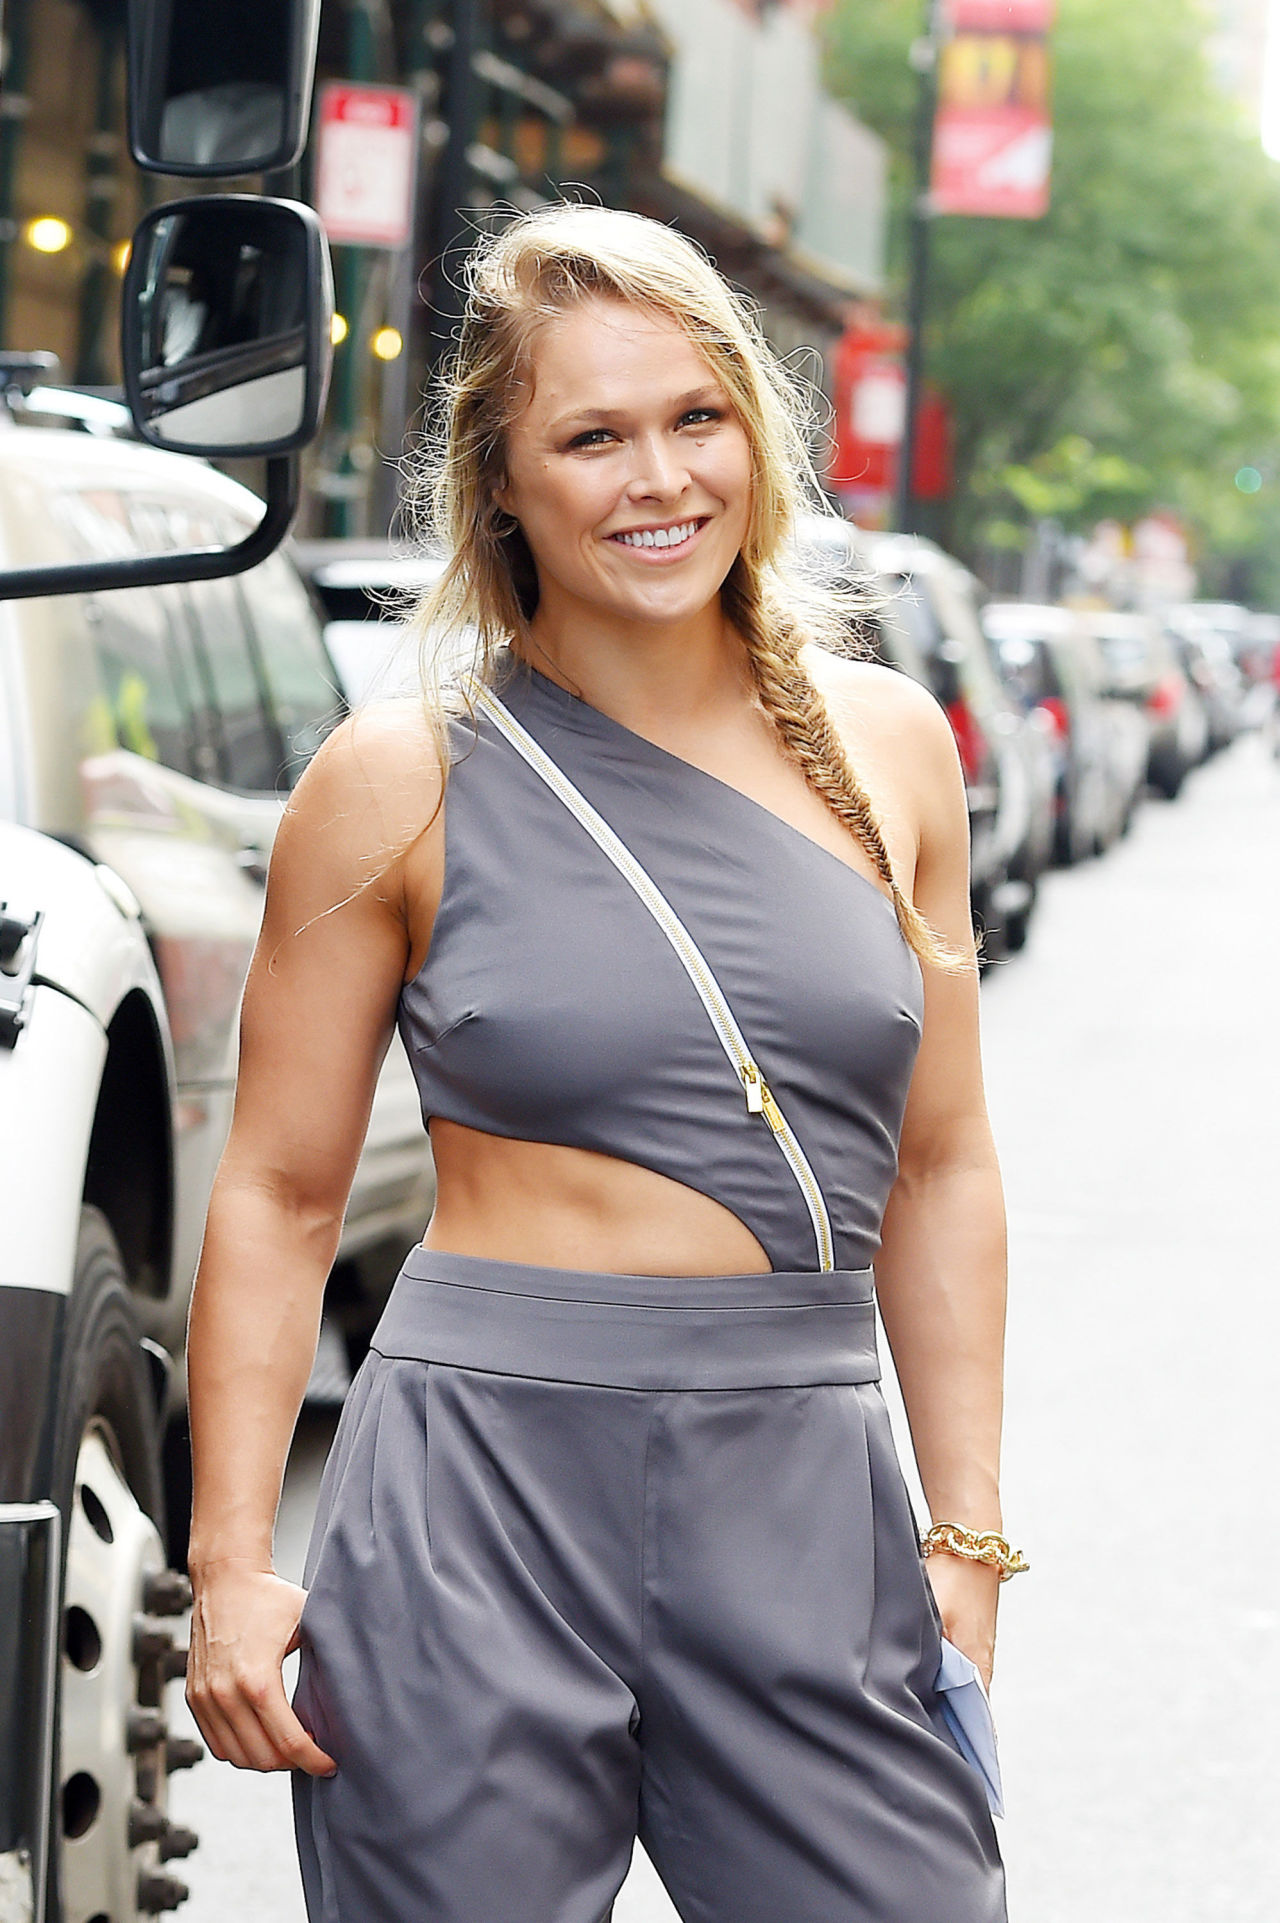 ronda-rousey-swimsuit